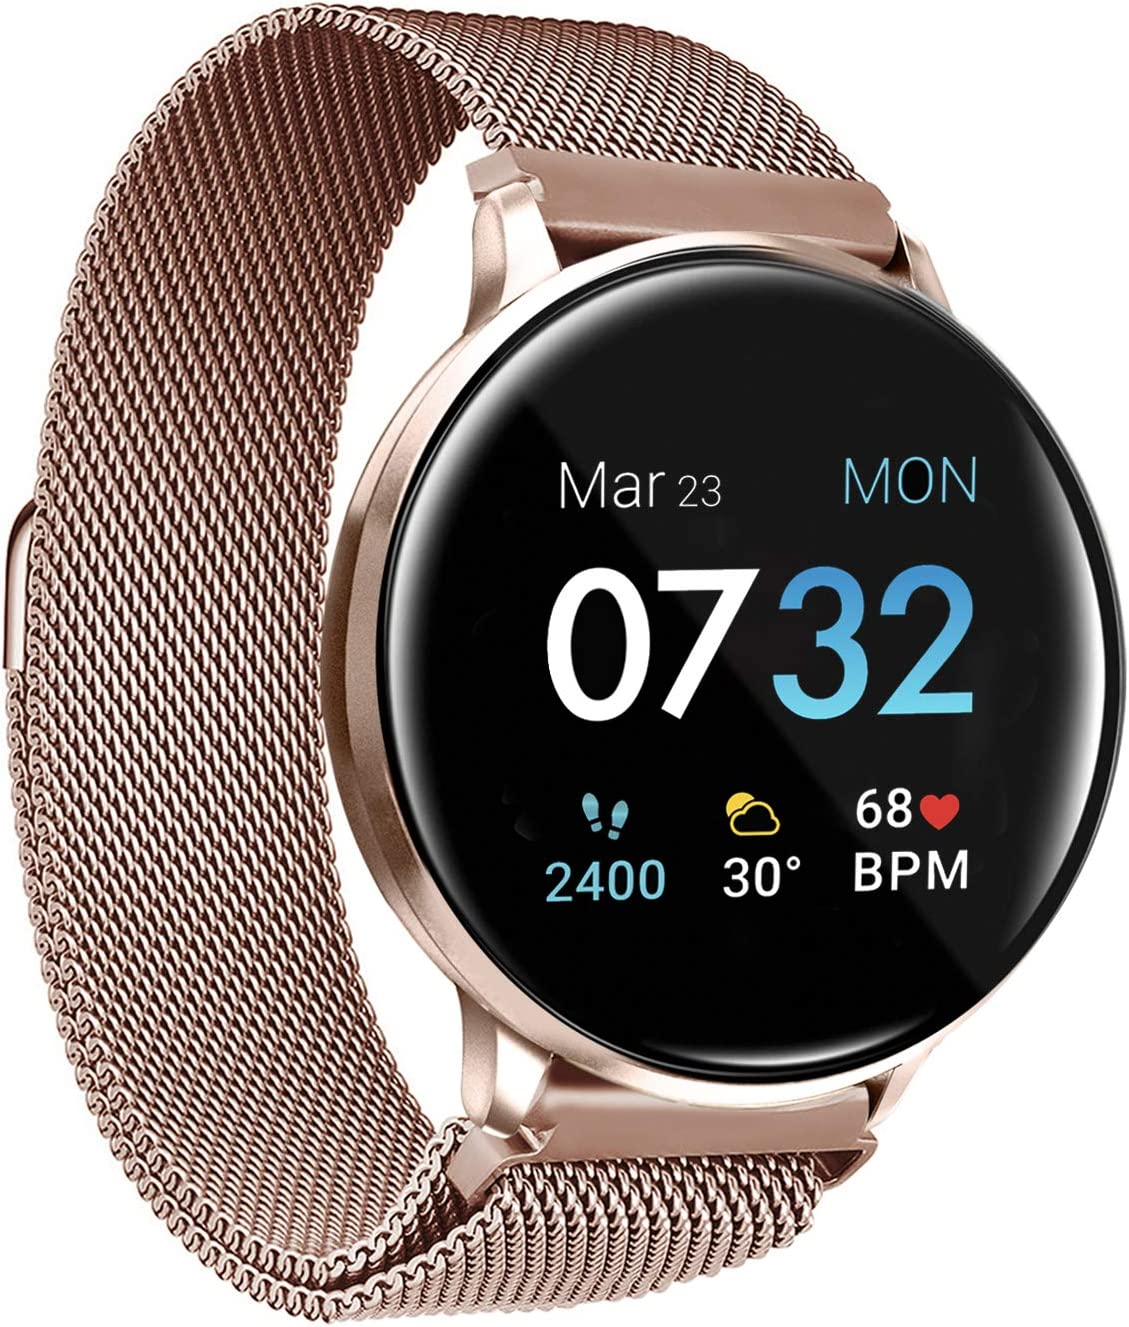 iTouch Sport 2021 Smartwatch Fitness Tracker Body Temperature Heart Rate Step Counter Sleep Monitor IP68 Waterproof for Women & Men up to 30 Day Battery Touch Screen Compatible w Android & iOS (43mm)